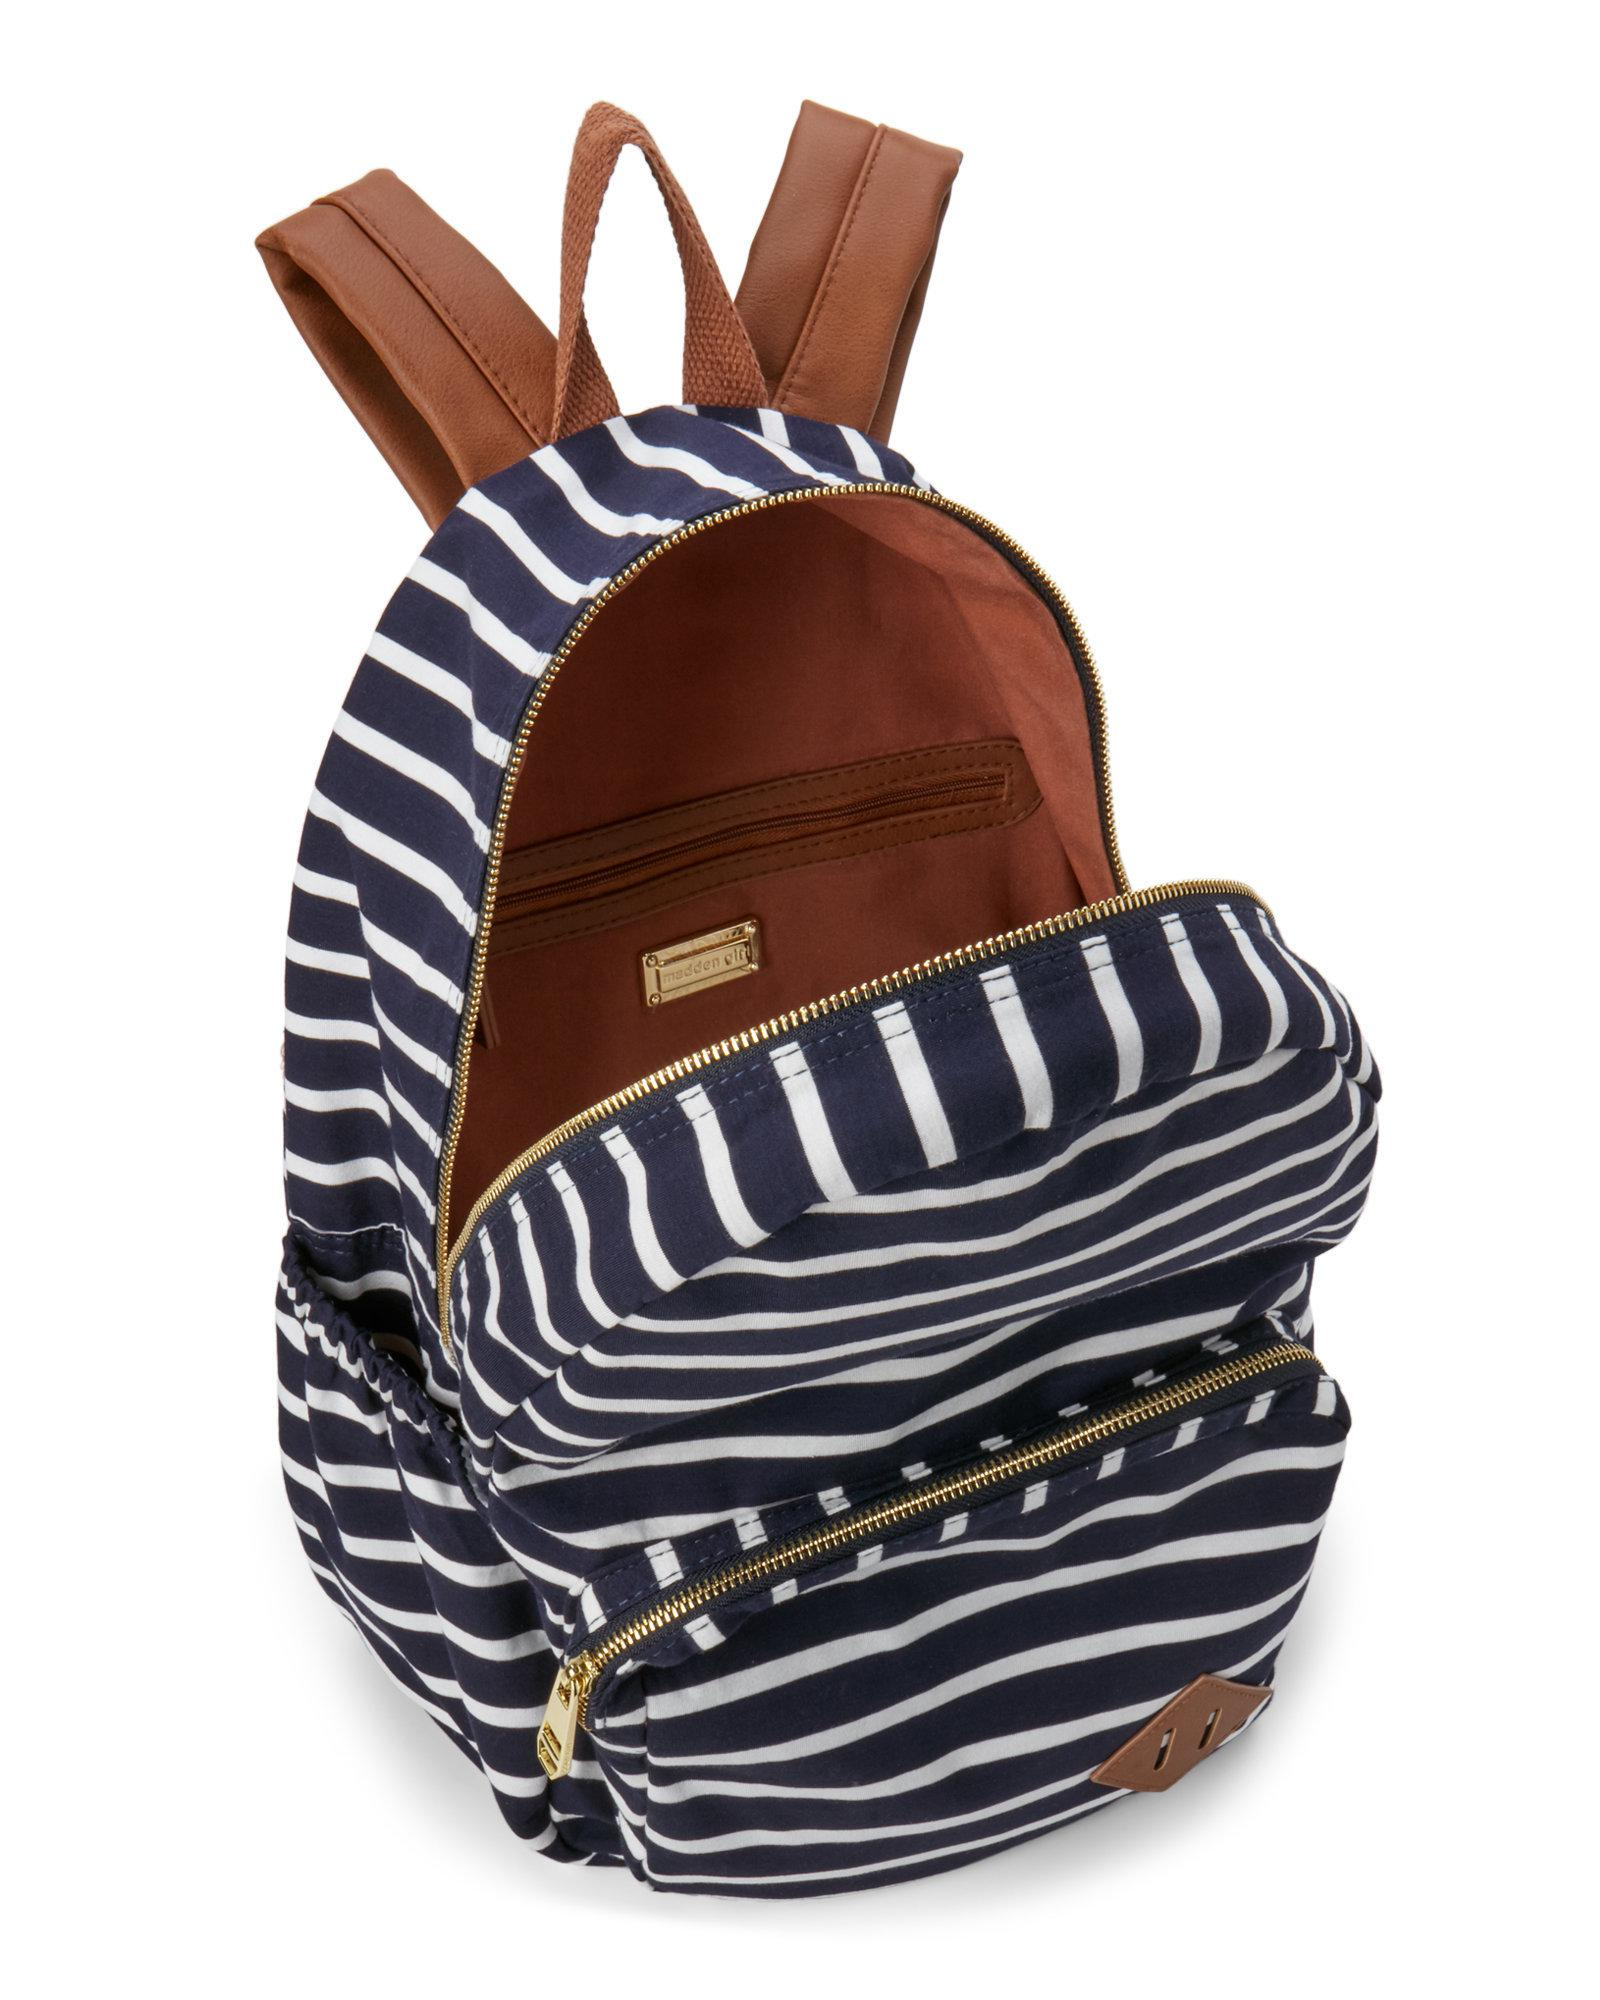 30421b5896c Steve Madden Striped Jersey Backpack in Blue - Lyst